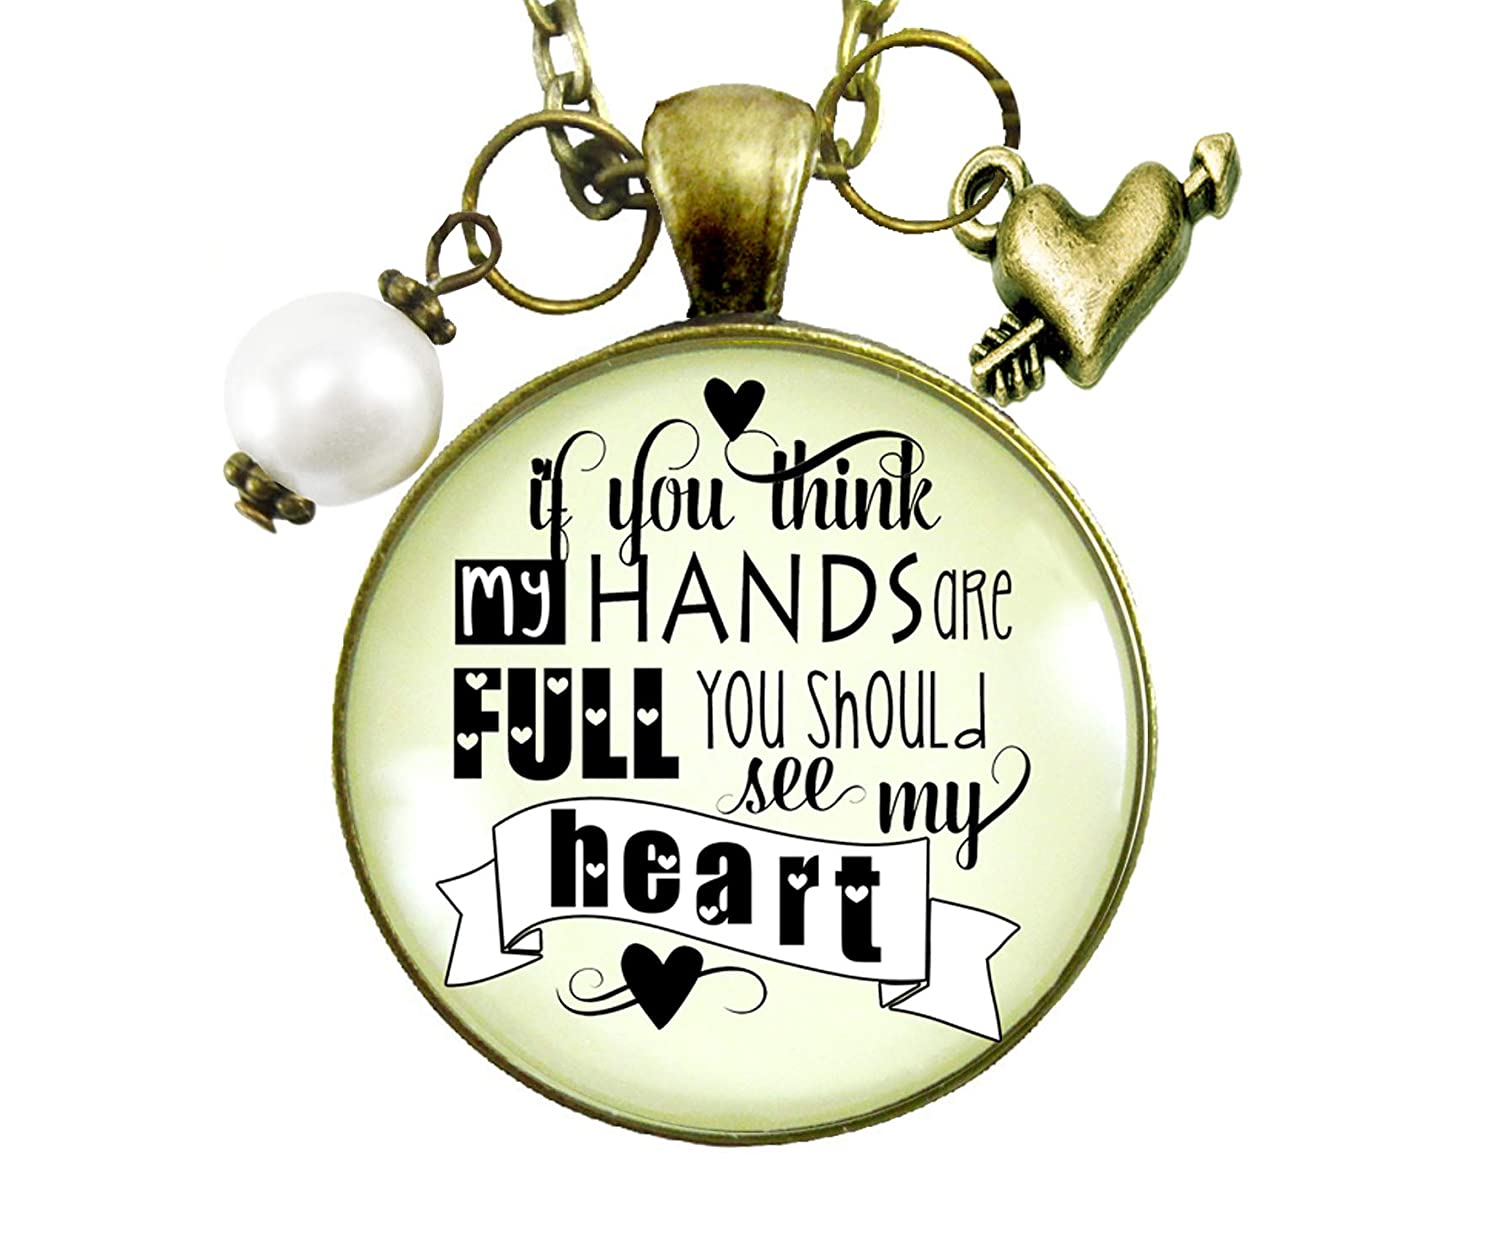 Amazon.com: Full Heart Necklace If You Think My Hands Are ...